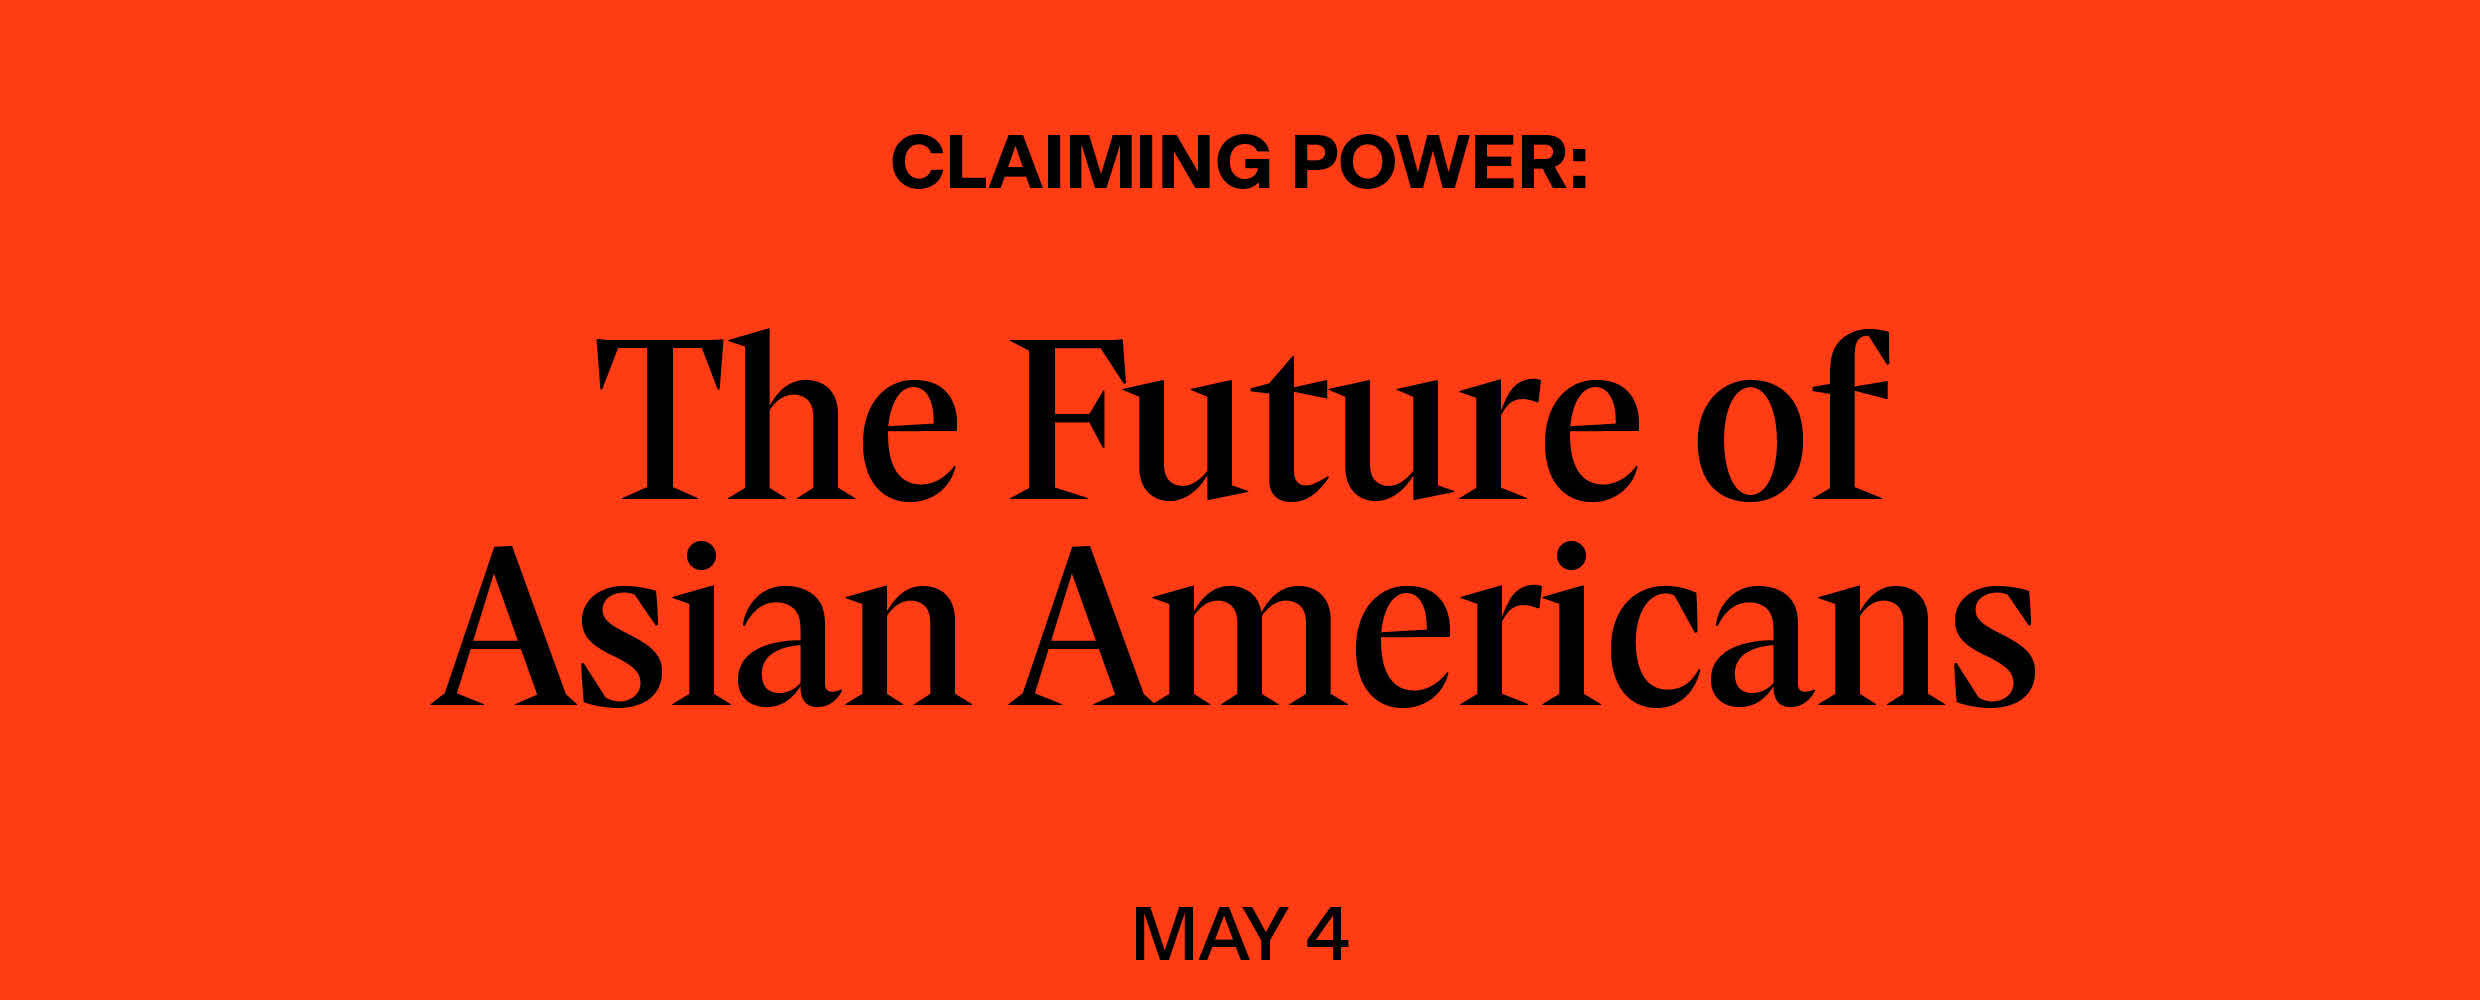 Claiming Power: The Future of Asian Americans